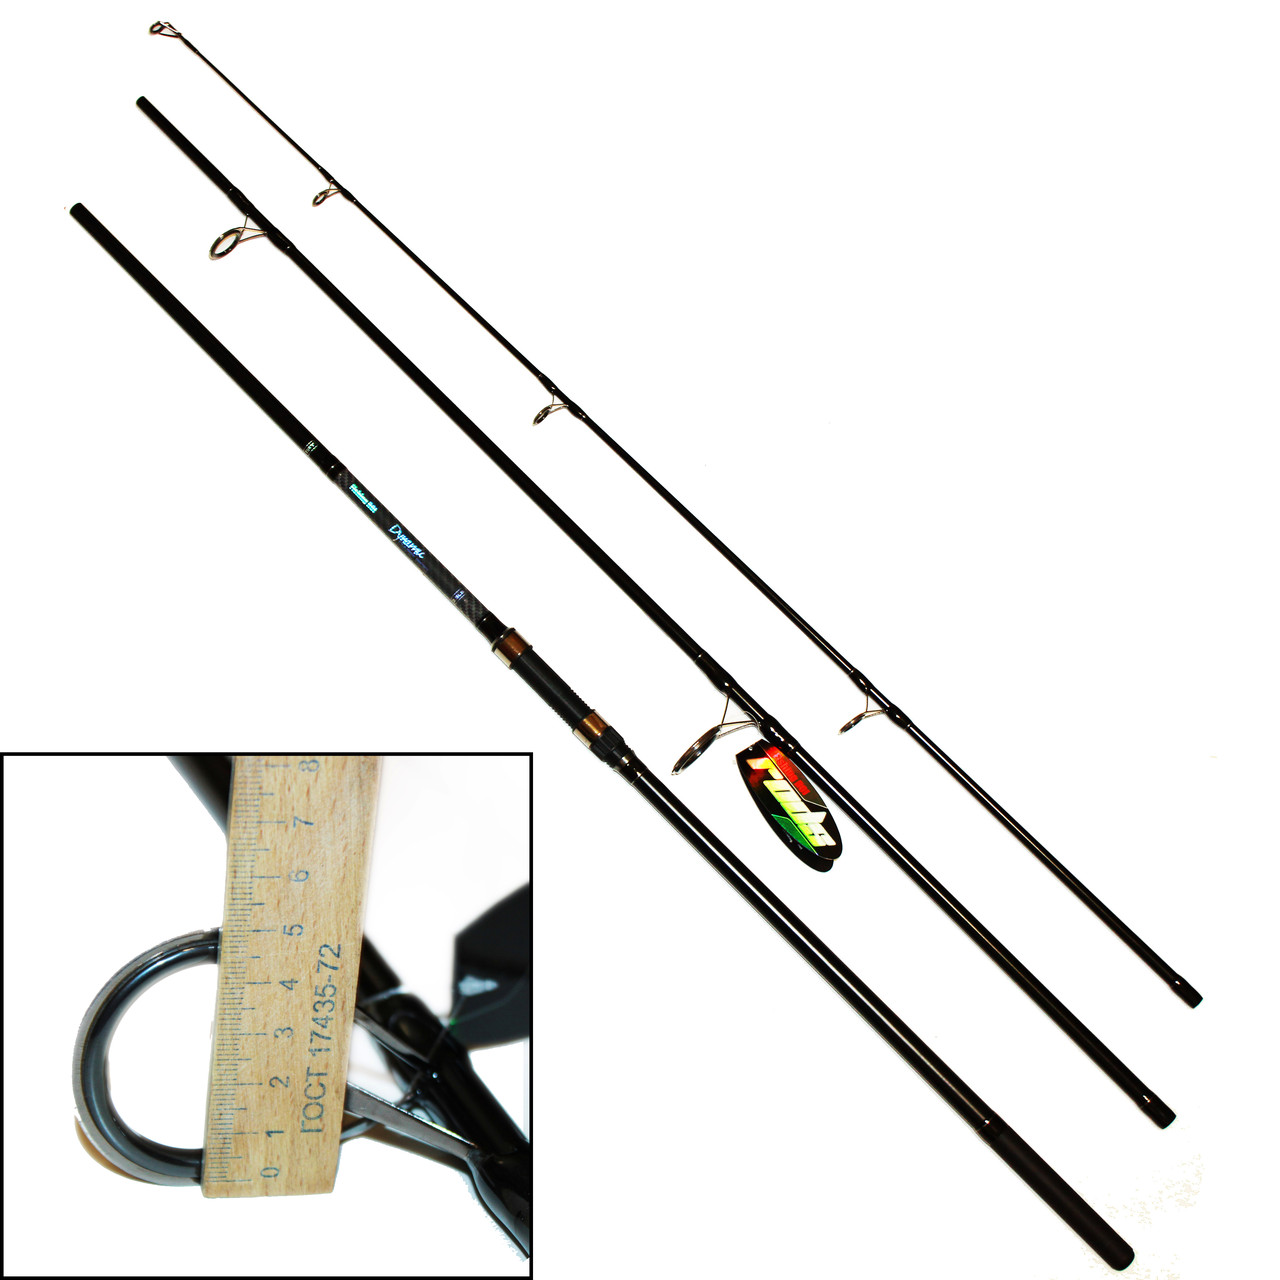 Спиннинг карповый Fishing ROI Dynamic Carp Rod 3.6 м.(первое кольцо 50мм)